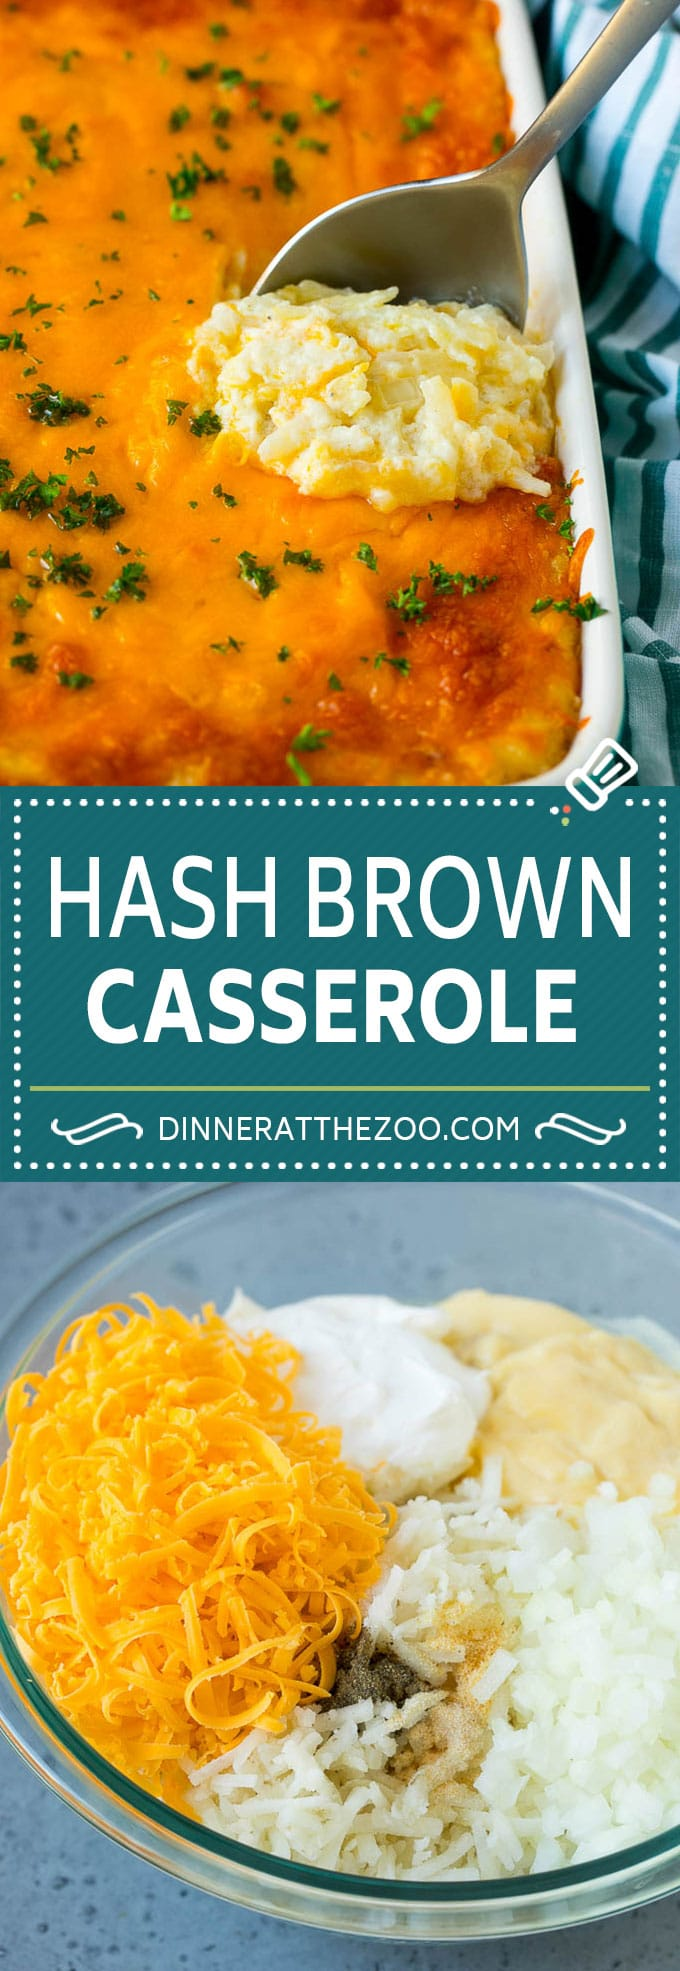 Hash Brown Casserole | Potato Casserole | Hash Brown Side Dish #potatoes #cheese #casserole #sidedish #dinneratthezoo